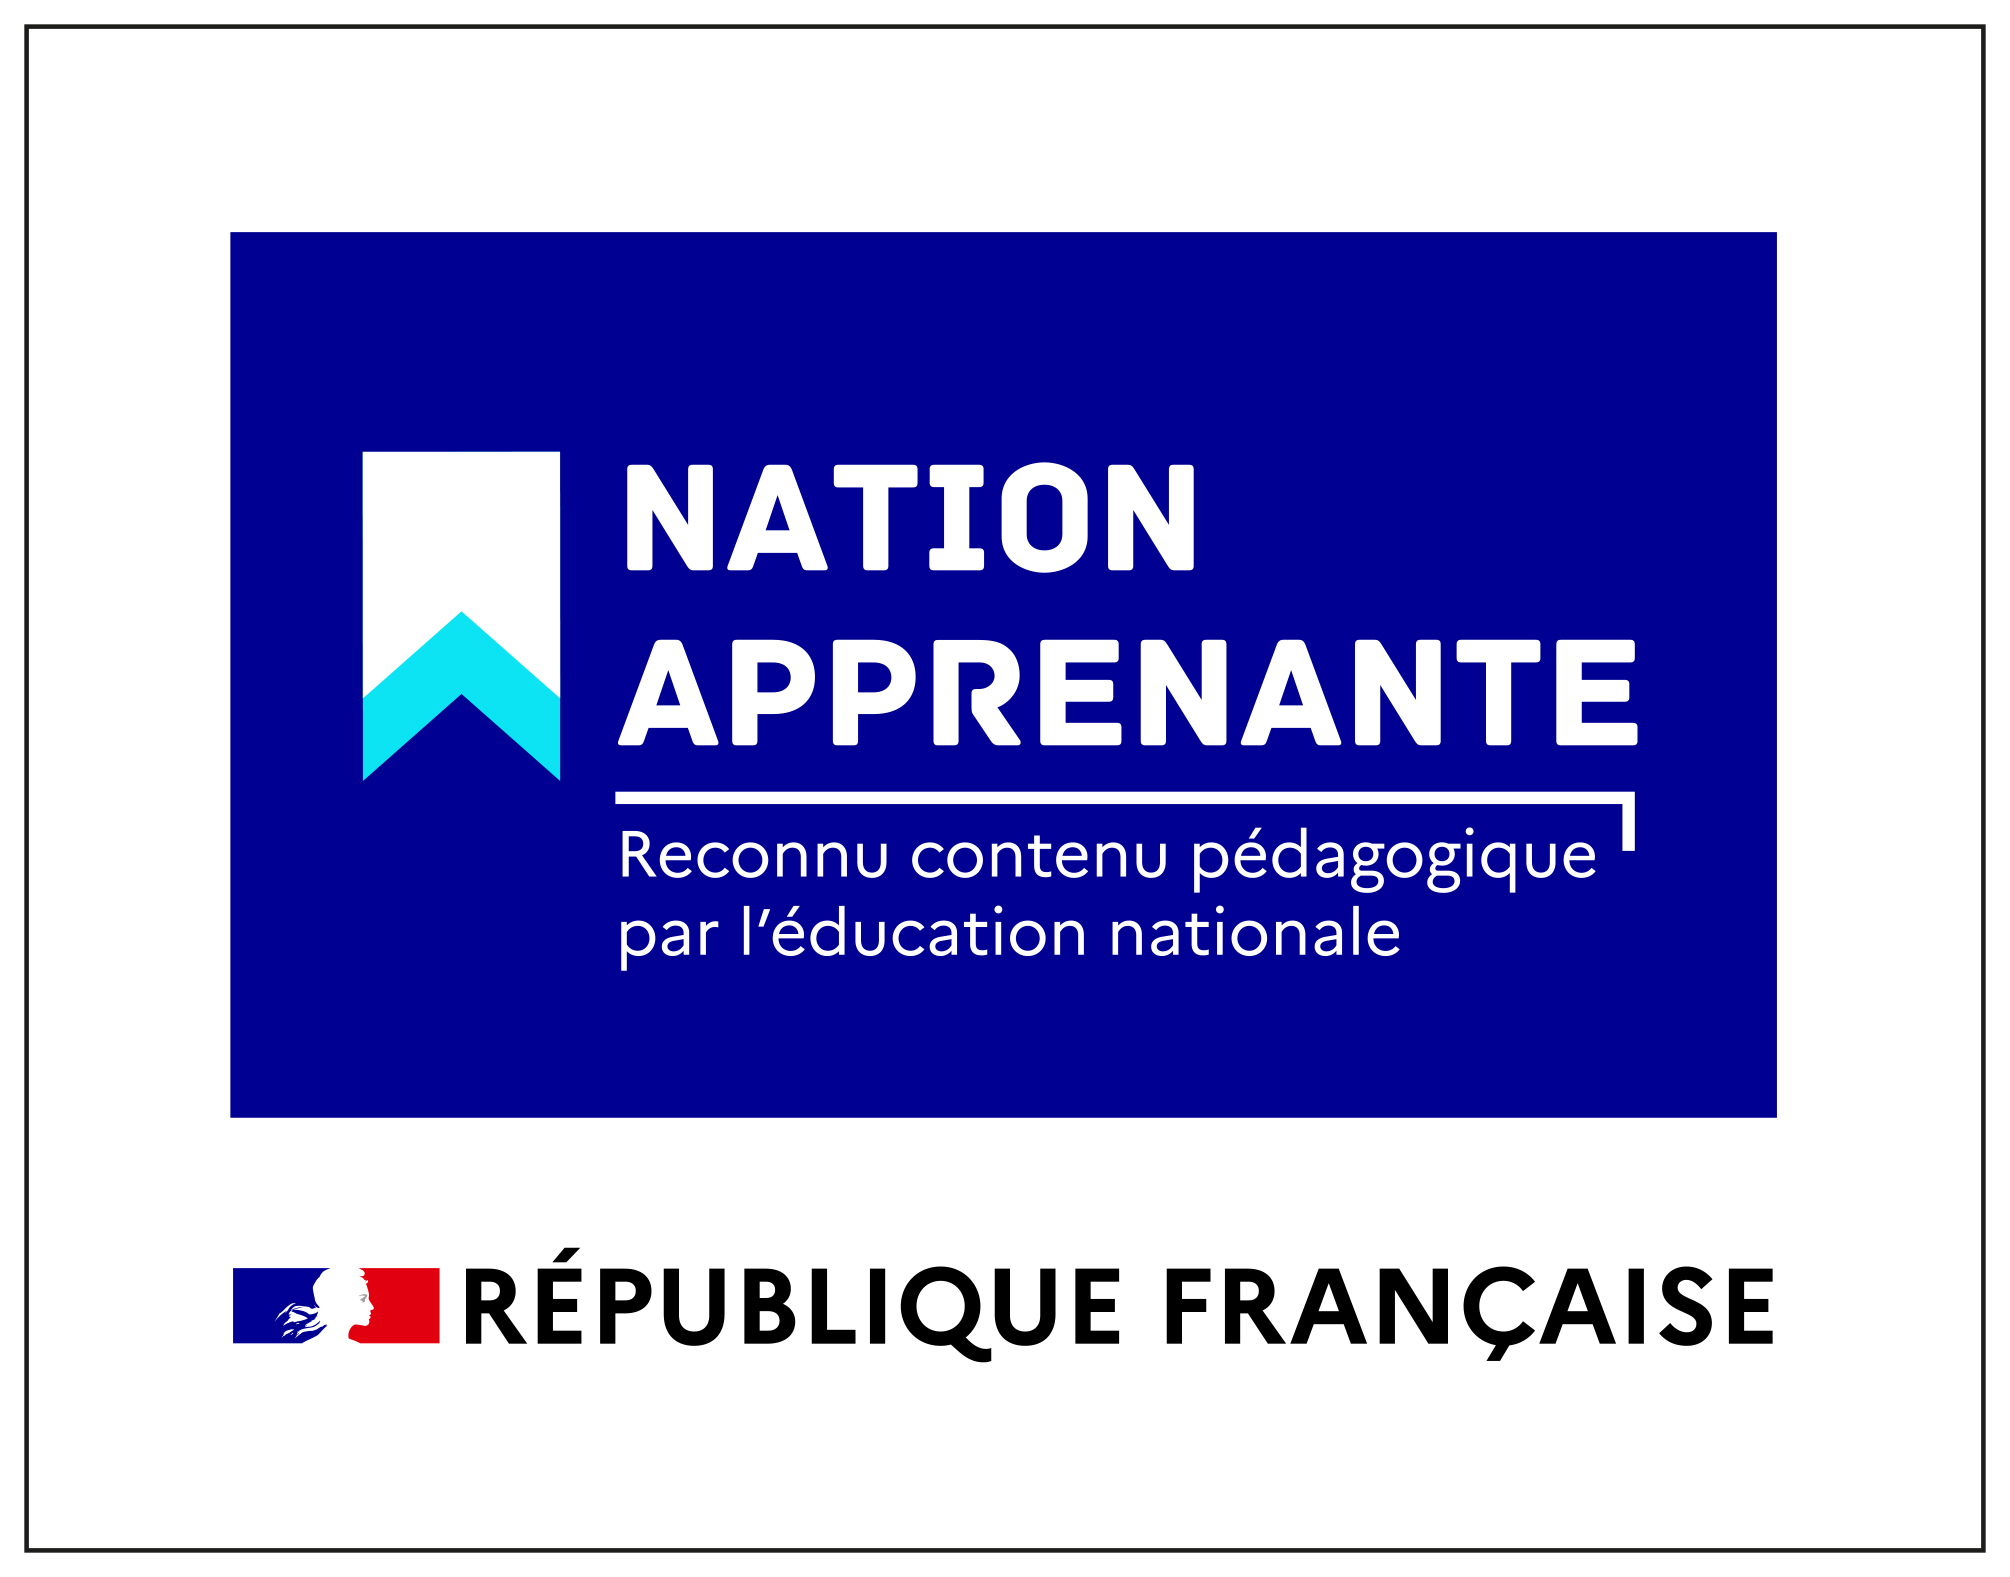 label-nation_apprenante-rect.jpg